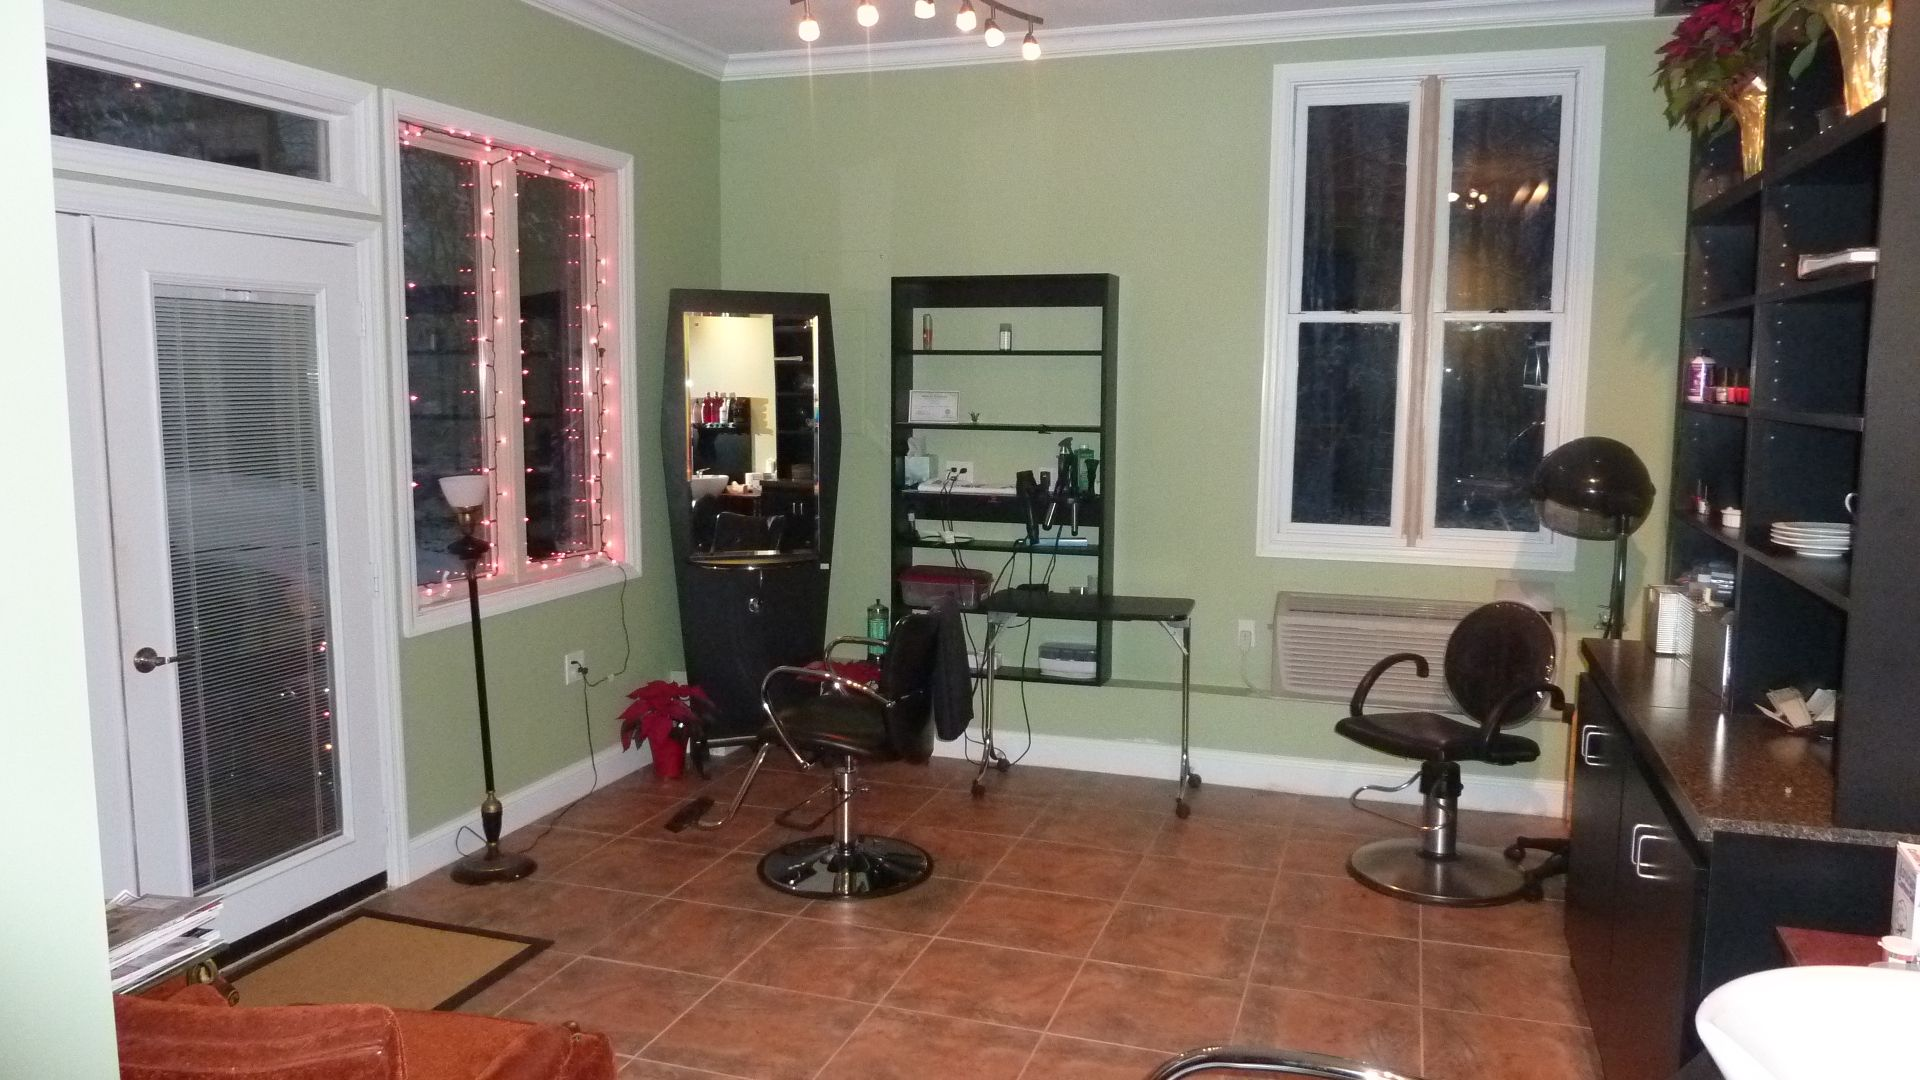 I Will Make My Own Salon In My Backyard Now That I Have Space To Do That In The Garage Home Salon Beauty Salon Decor Salon Decor